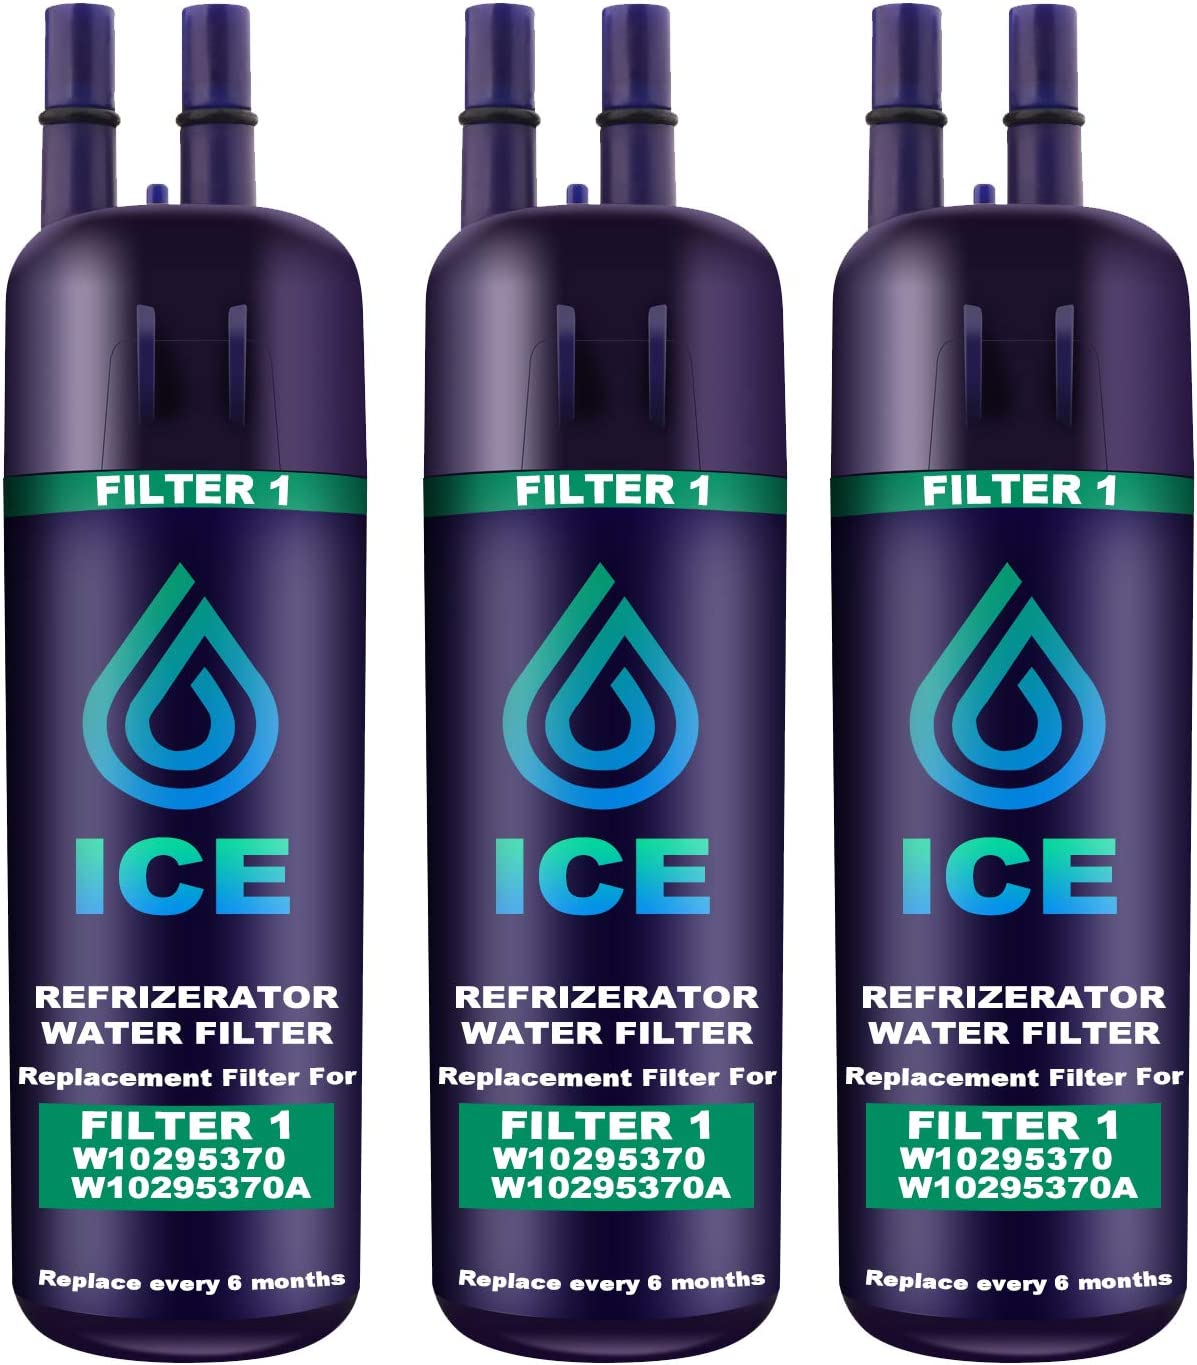 Compatible with W10295370A EDR1RXD1 Refrigerator Water Filter 1 Kenmore 46-9081,Kenmore 46-9930 water filter 3pack EDR1RXD1 W10295370 Water Filter Cap Replacement